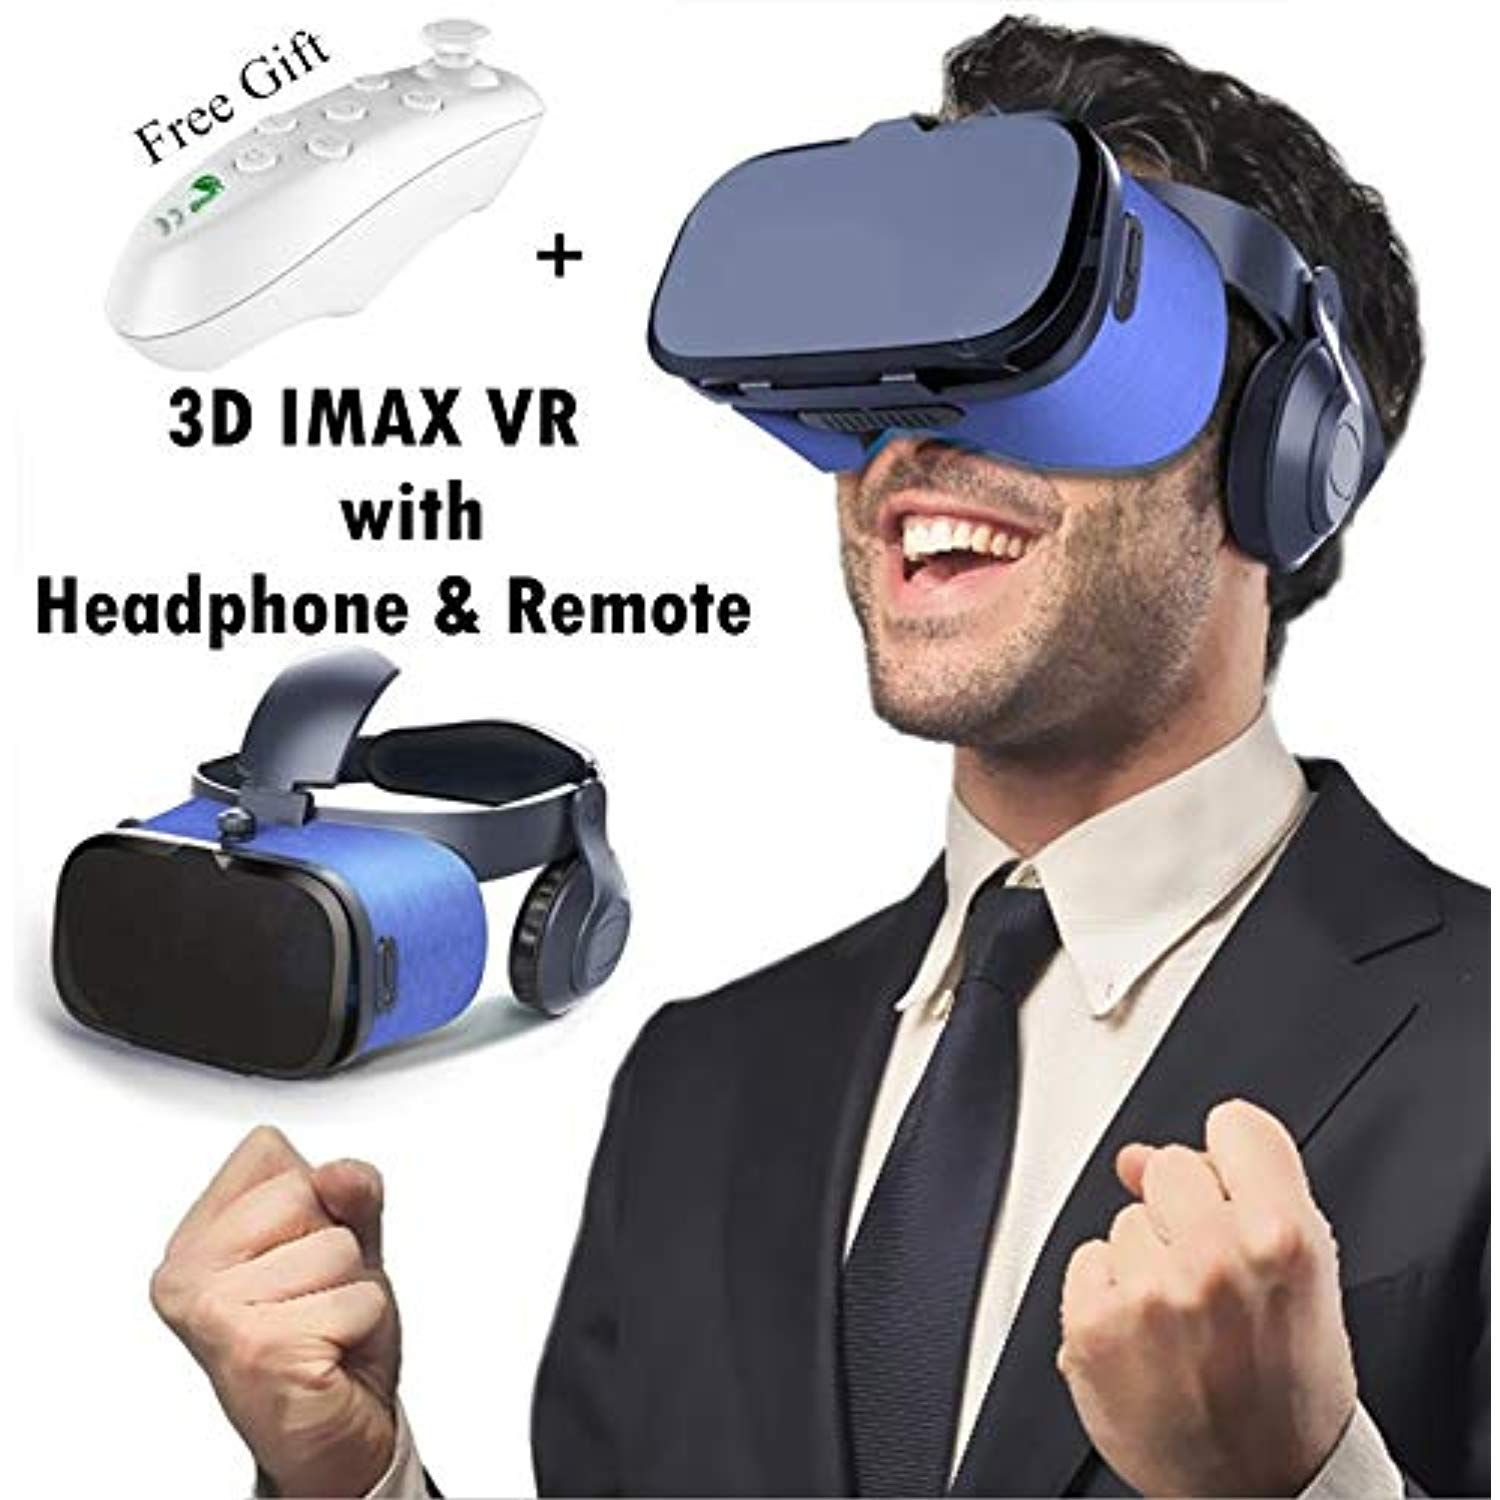 3D Virtual Reality Headset for Kid #accessories | Virtual